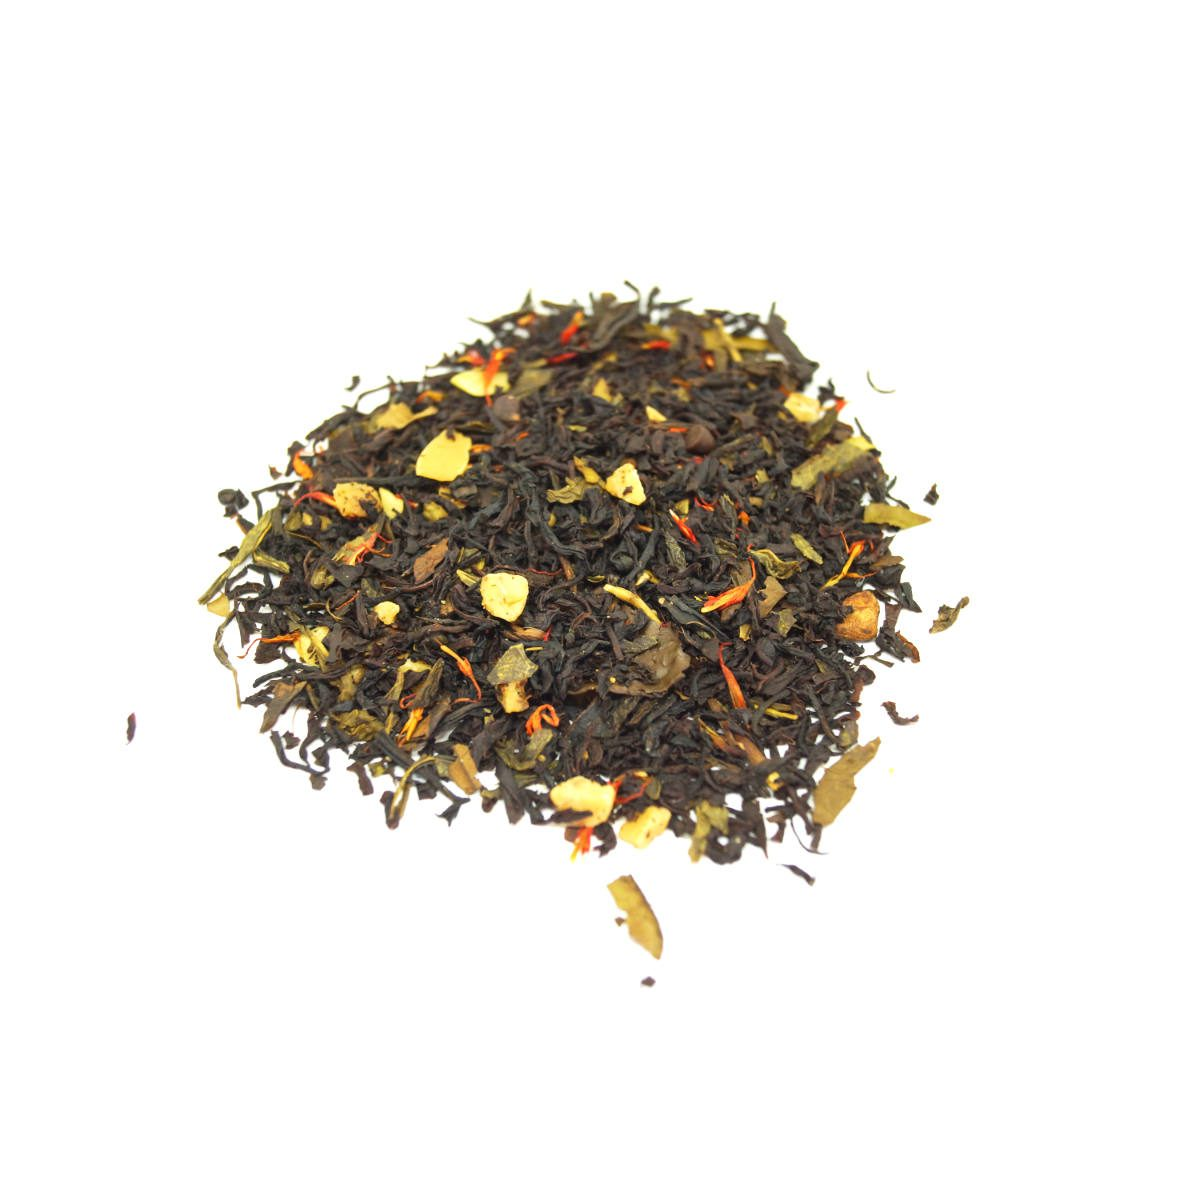 Grandma's Kitchen Black Tea has a combo of black teas and a green tea plus the added ingredients ofRoasted Almonds, Caramel and Cinnamon.